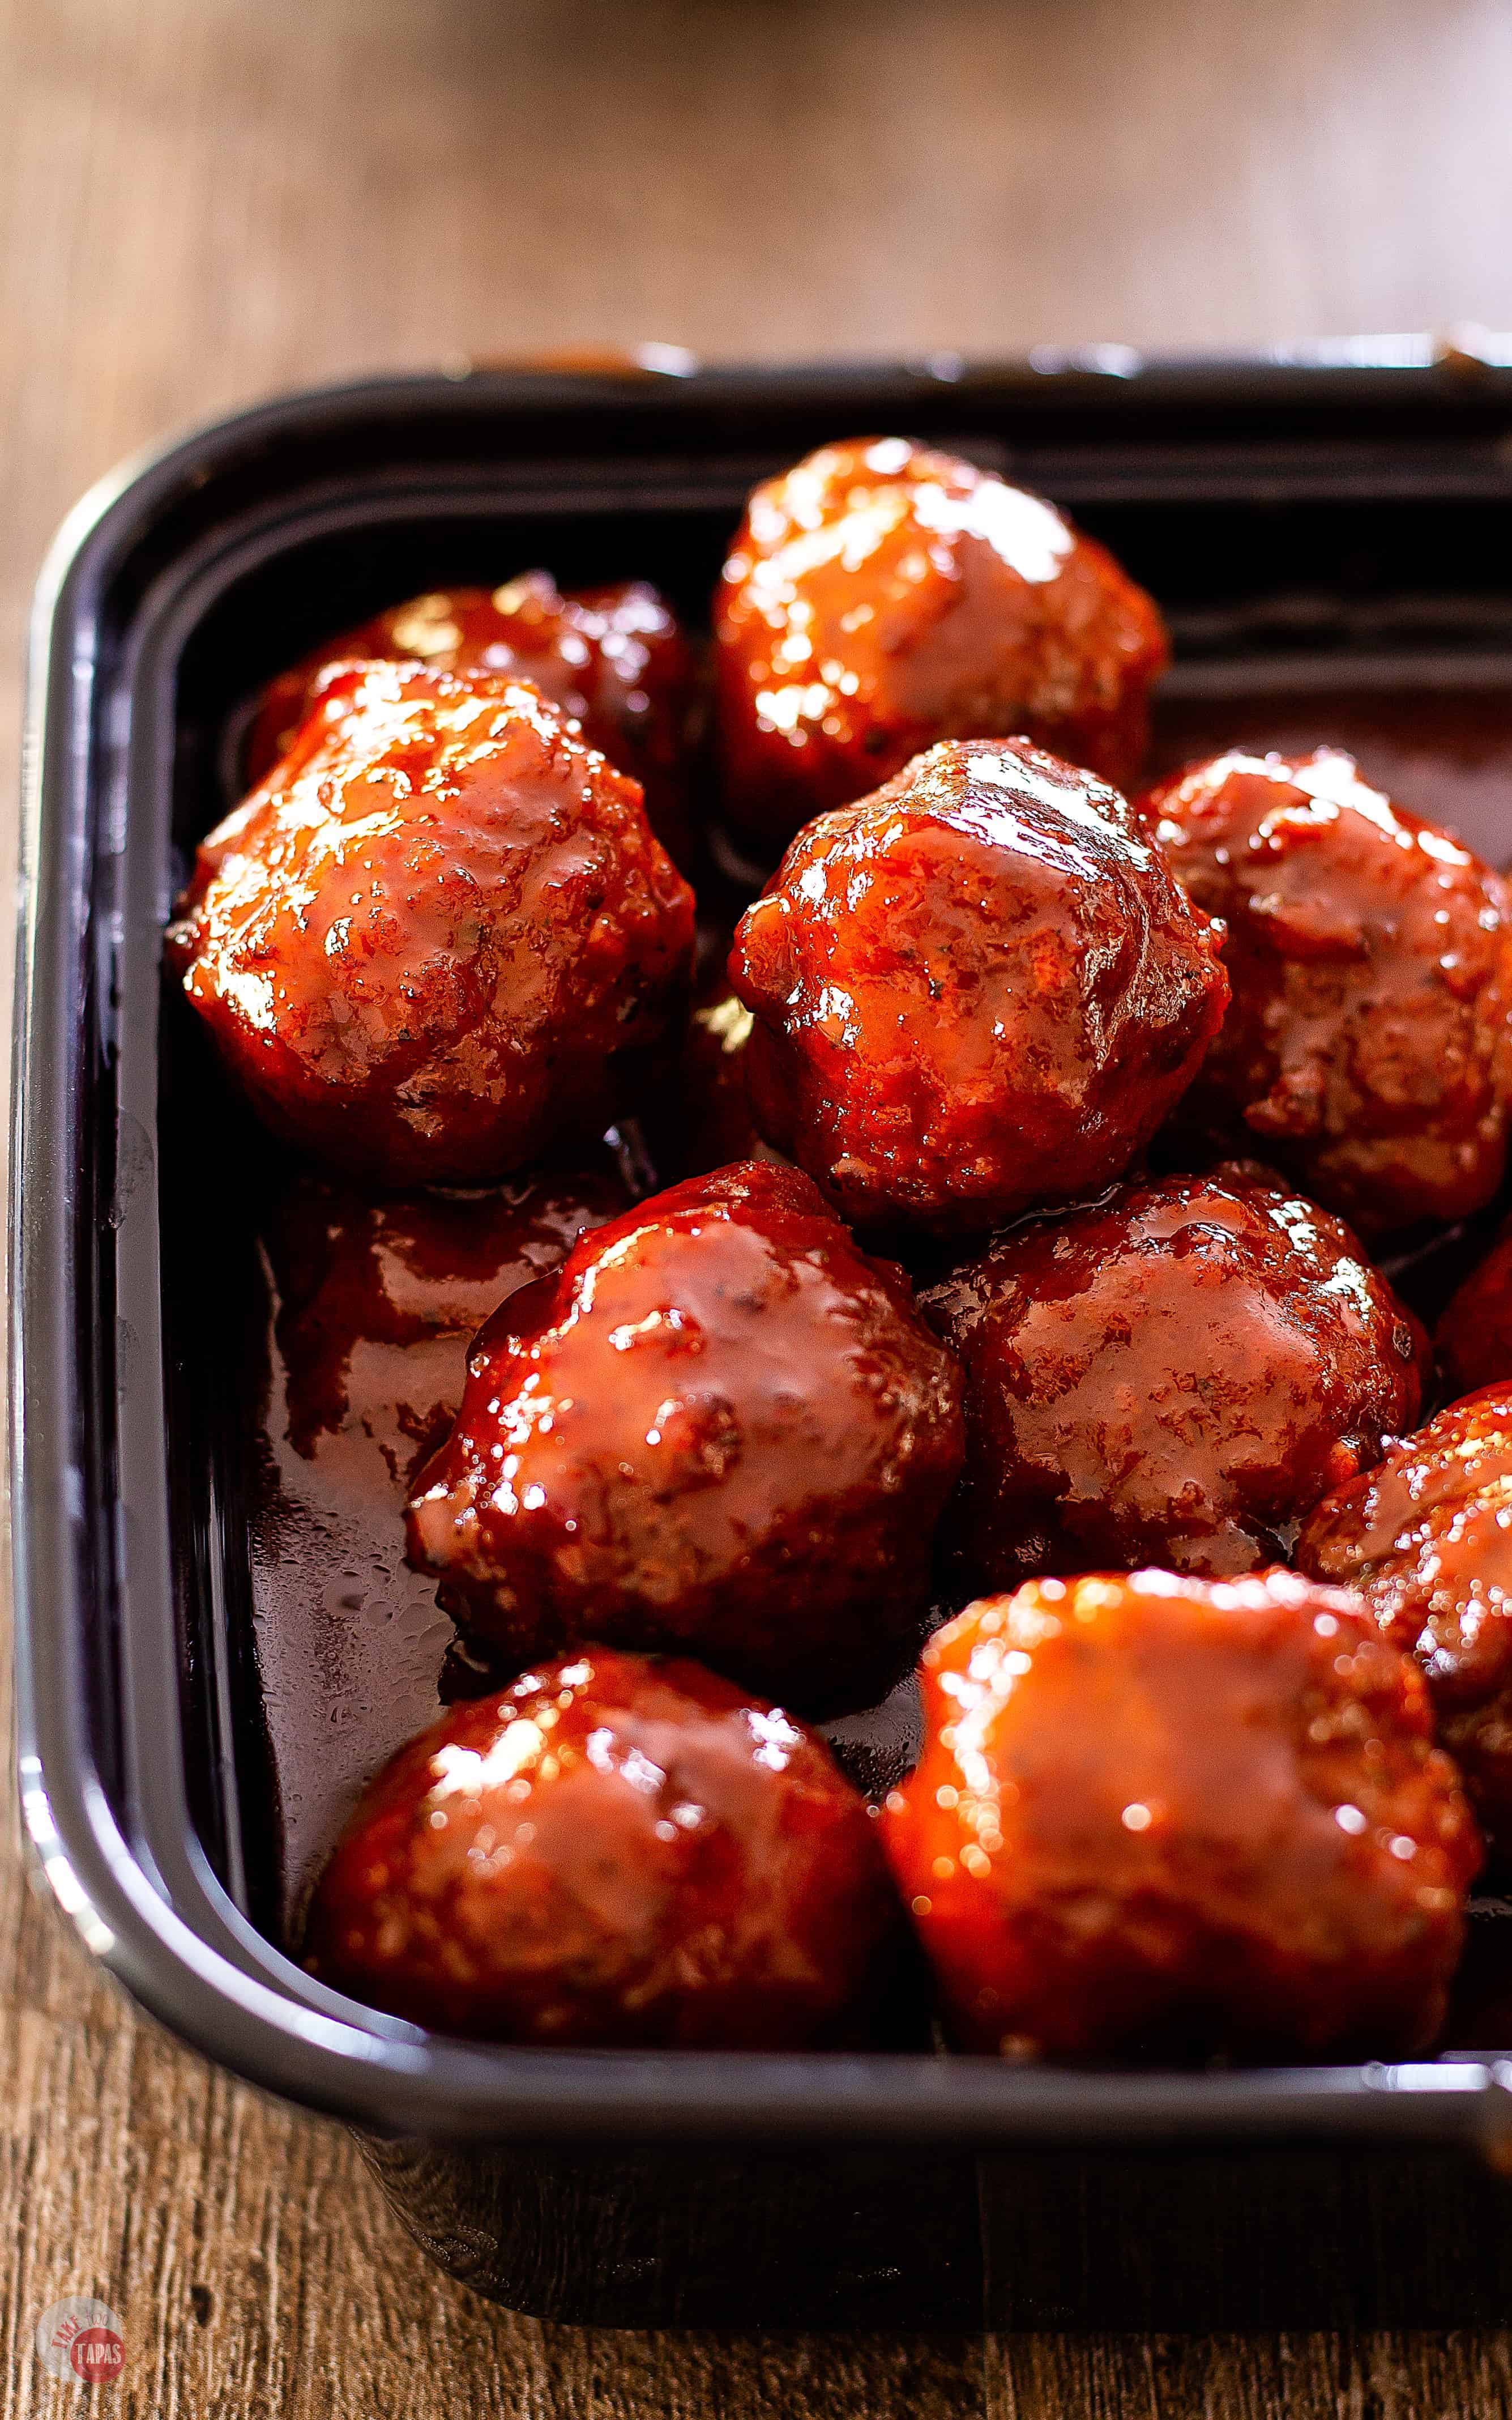 Tangy sweet crockpot meatballs easy to prep and are hands-off in the crockpot!! | Take Two Tapas | #CrockpotMeatballs #InstantPotMeatballs #PartyMeatballs